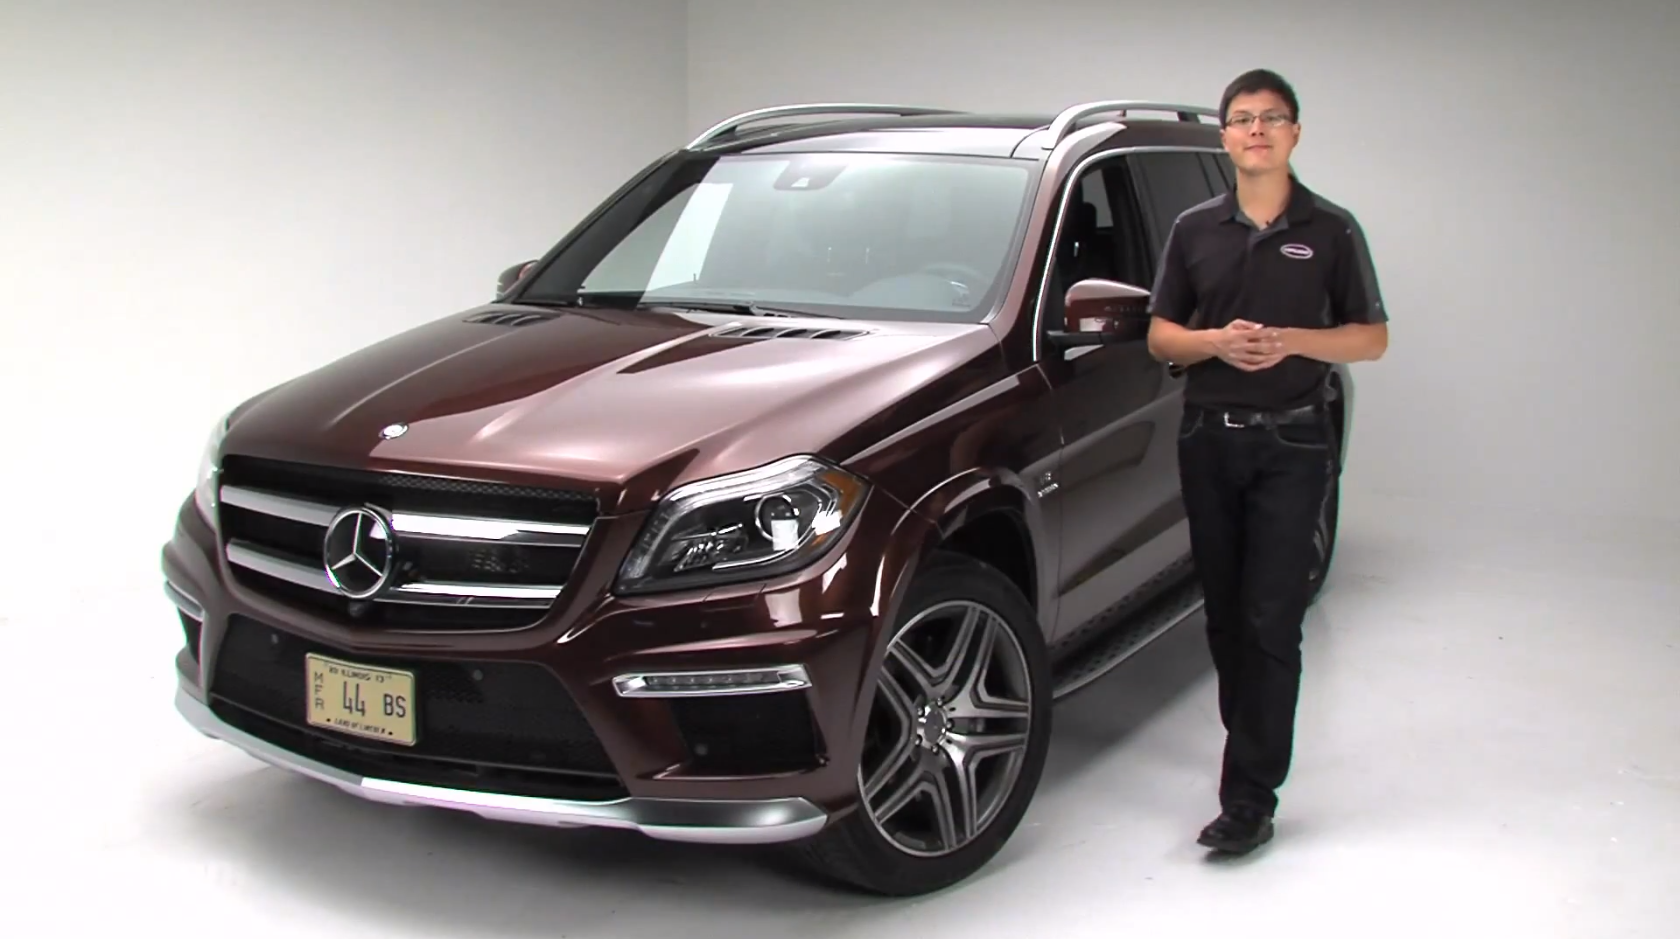 Mercedes benz gl 63 amg reviewed by cars autoevolution for Mercedes benz gls 63 amg